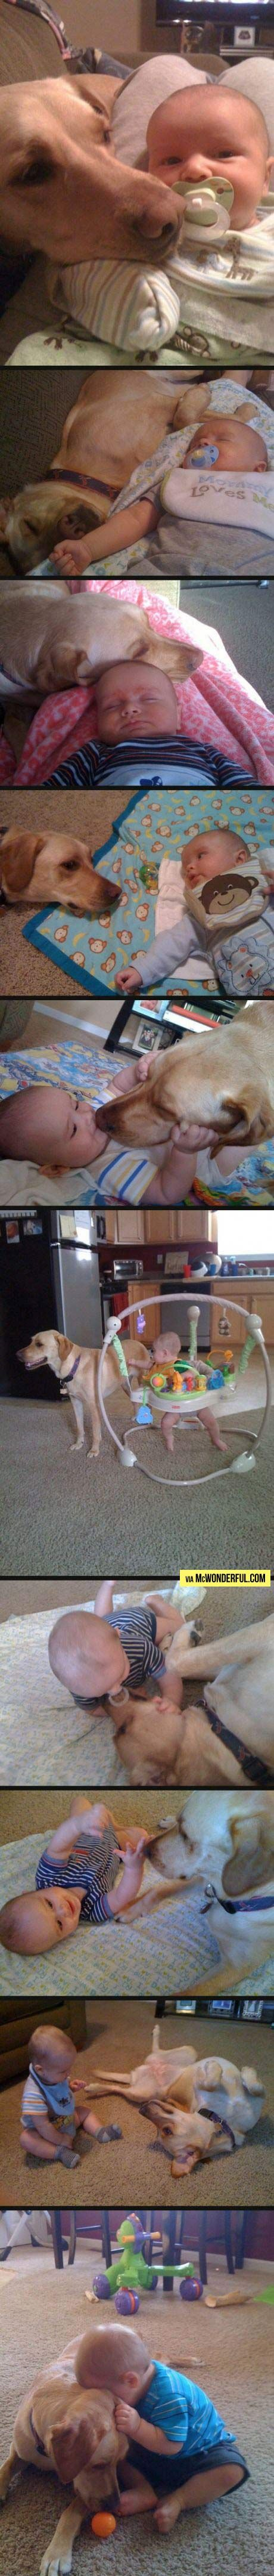 """Best friends for 2 years As I scrolled through this I just kept thinking """"that dog better not die at the end!"""""""